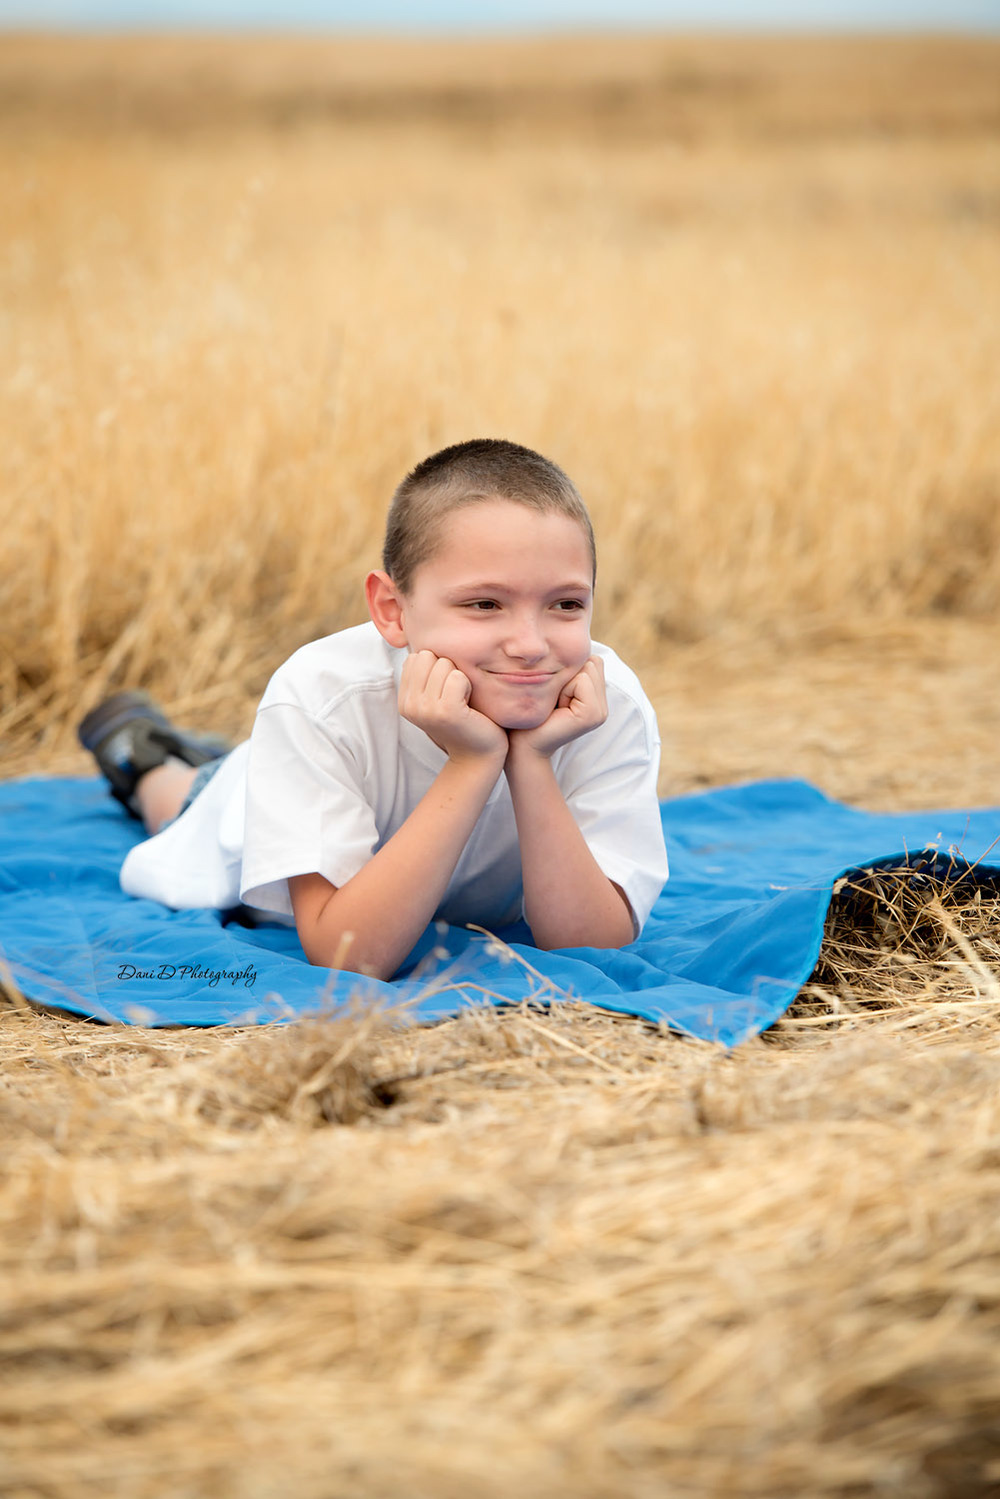 Photo of boy laying on a blanket outside - Redding CA photographer - Dani D Photography